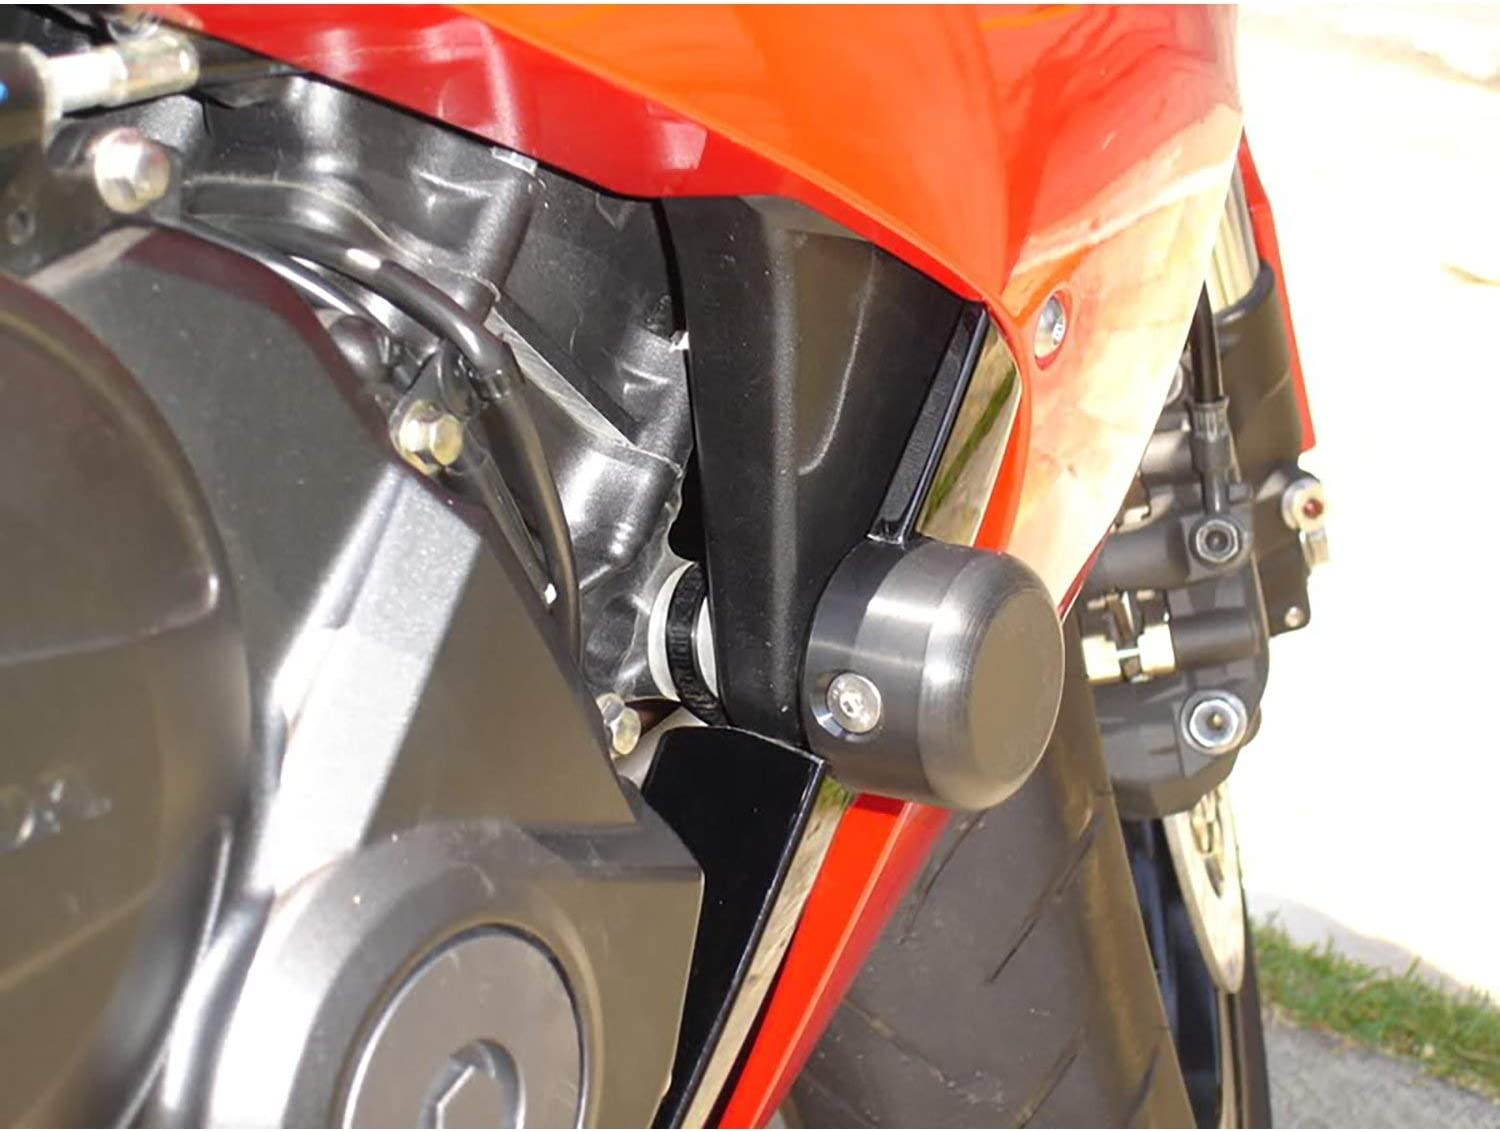 HONDA CBR 600RR NEW before selling 2003-2006 FRAME WOODCRAFT SLIDERS Max 54% OFF RACING